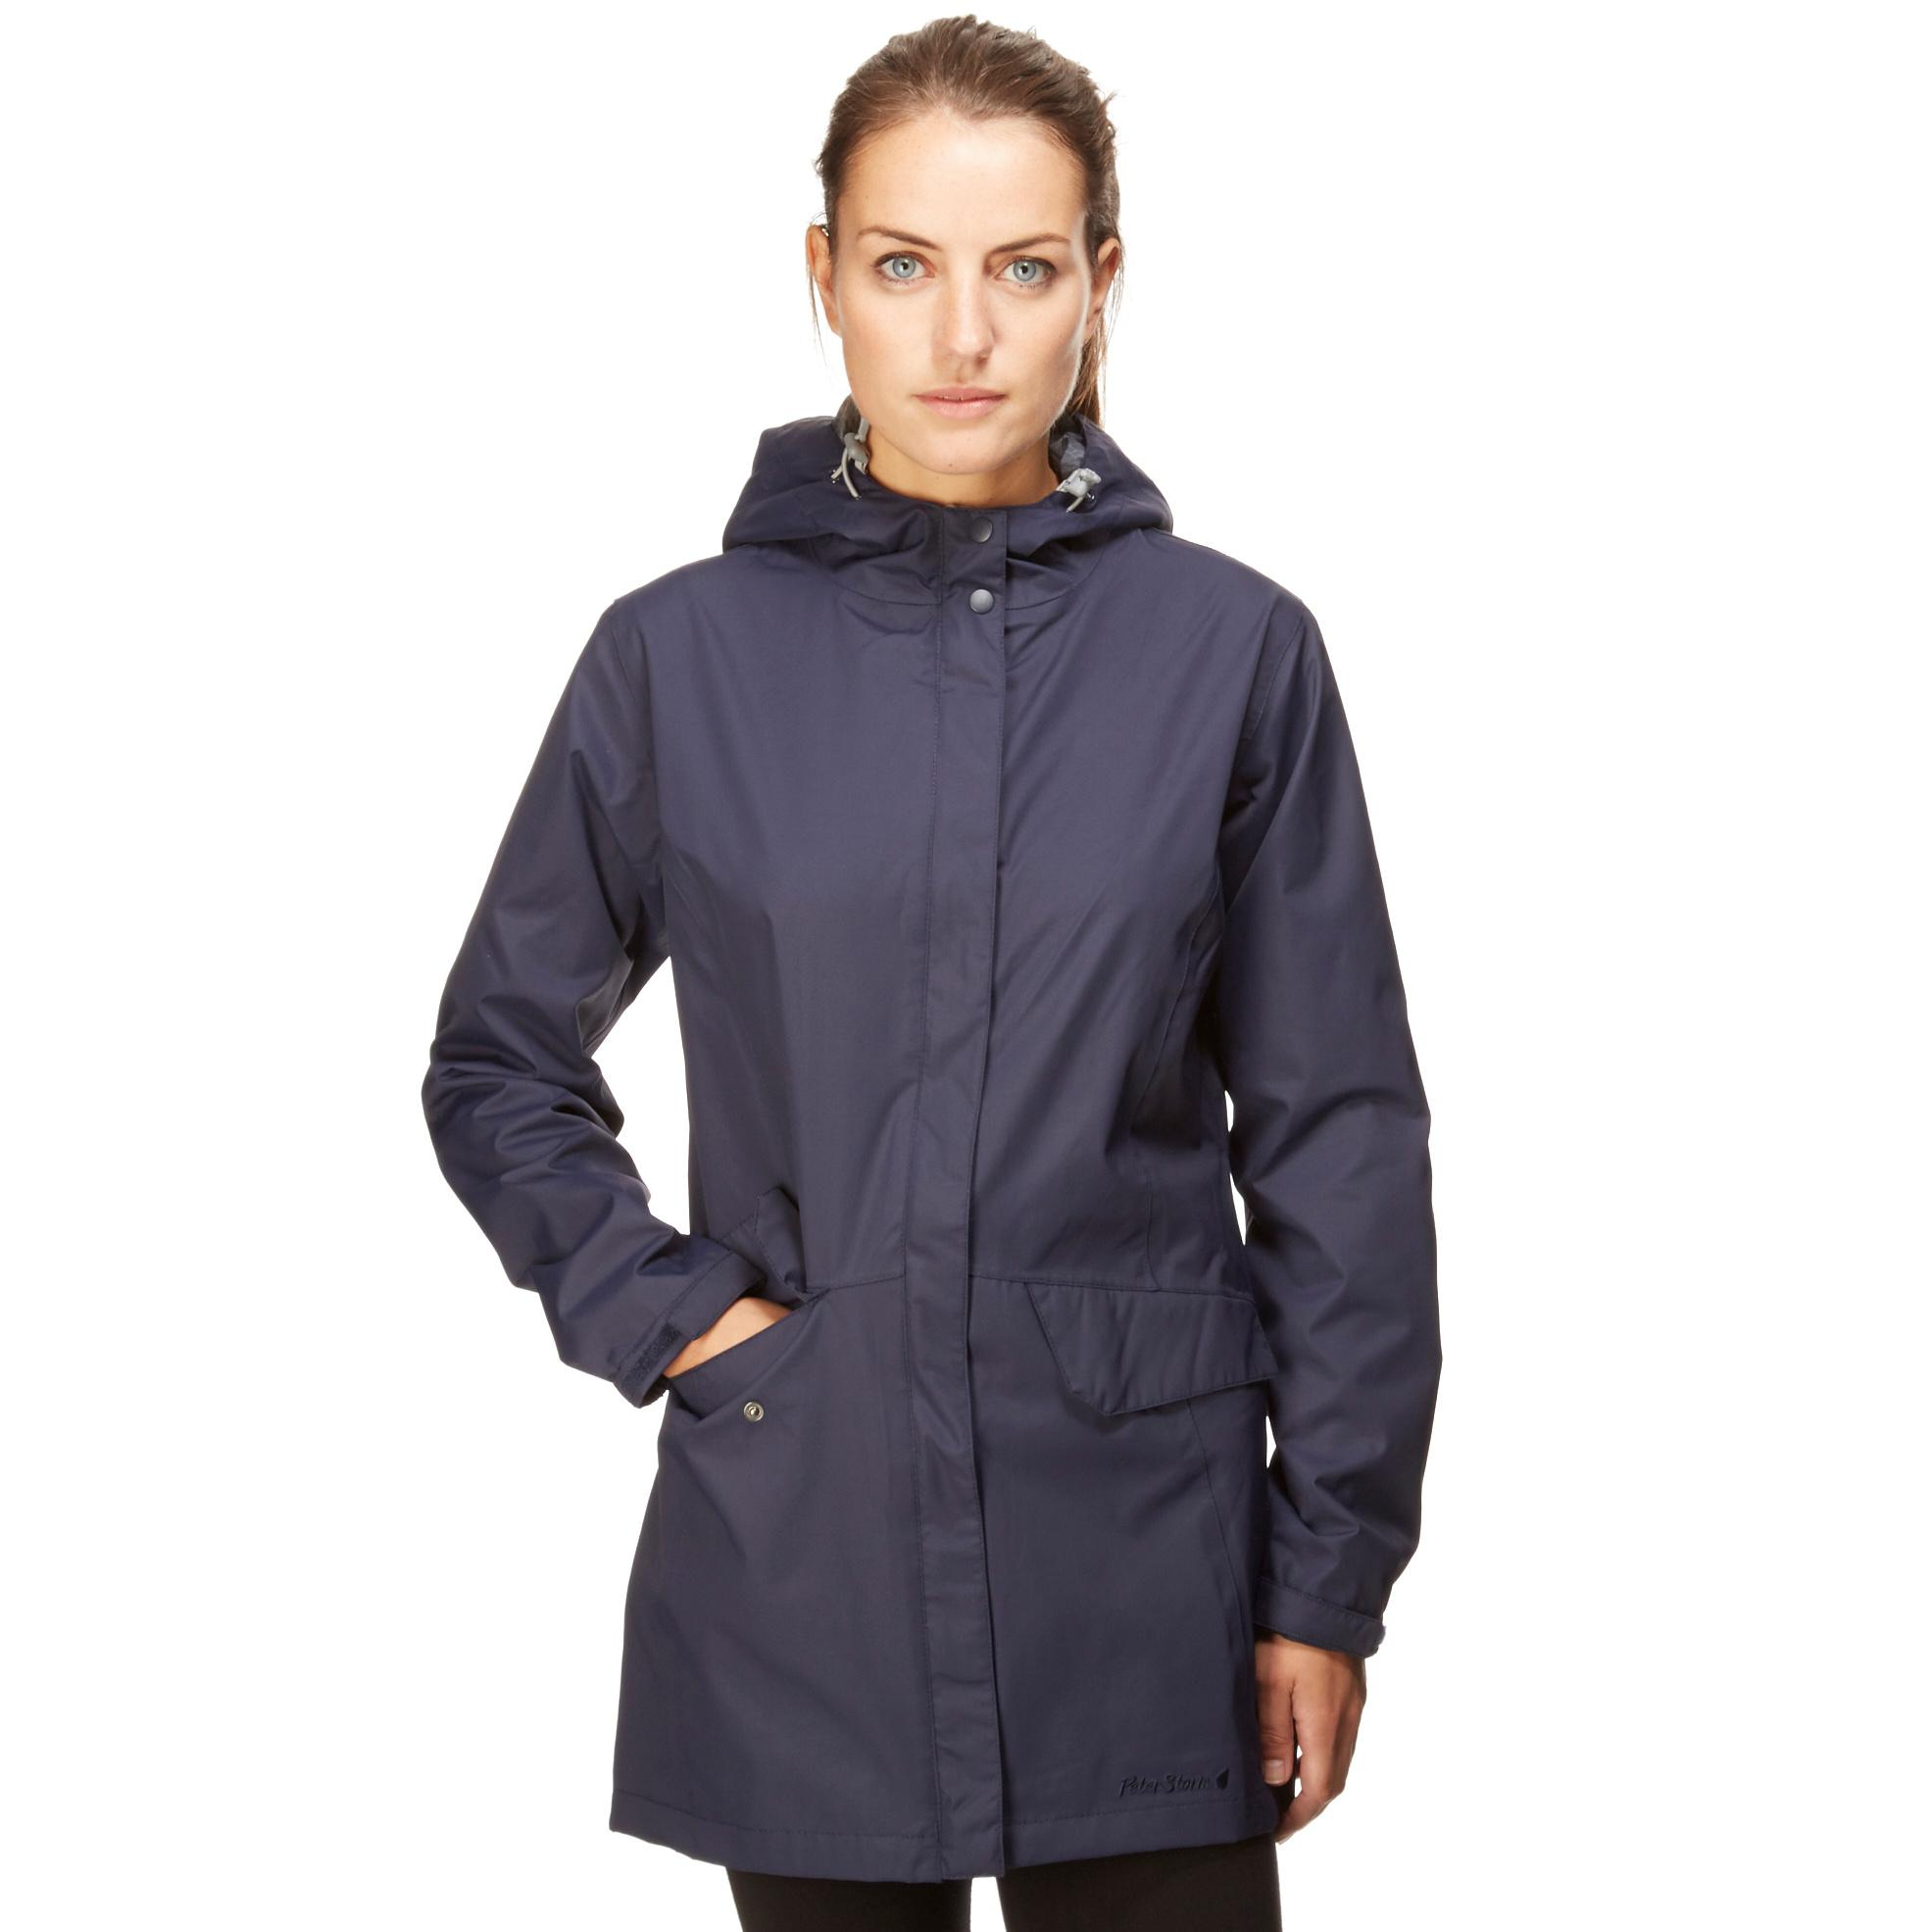 Women's Peter Storm Waterproof Jackets | Blacks